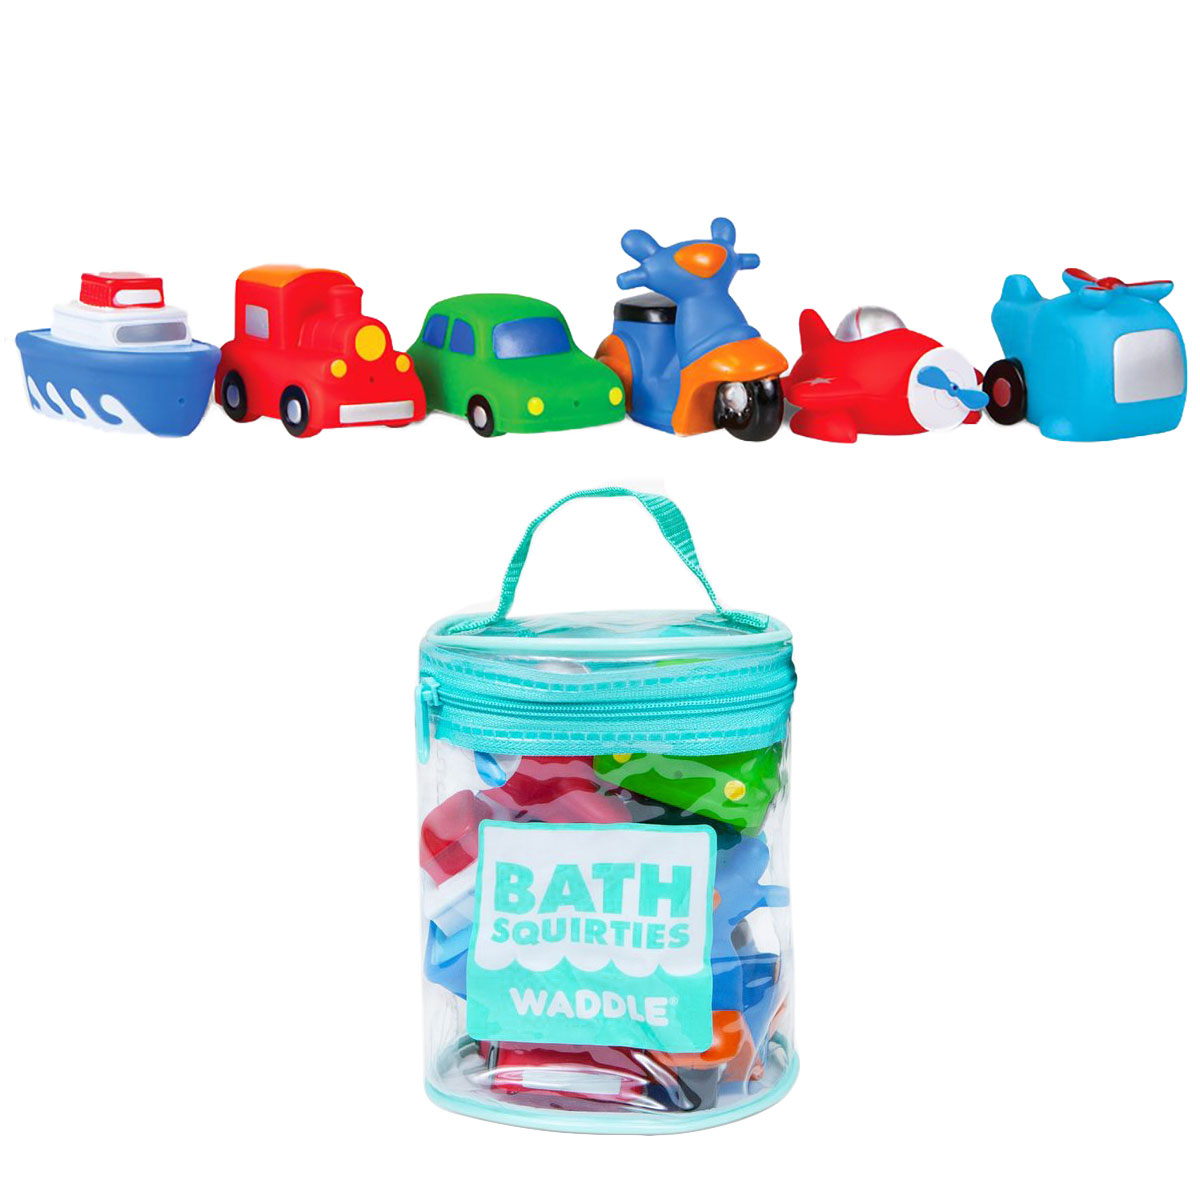 Waddle Transportation Bath Squirter Toys Boys Cars Trucks 6 Pack Bathtime Gift by Waddle and Friends